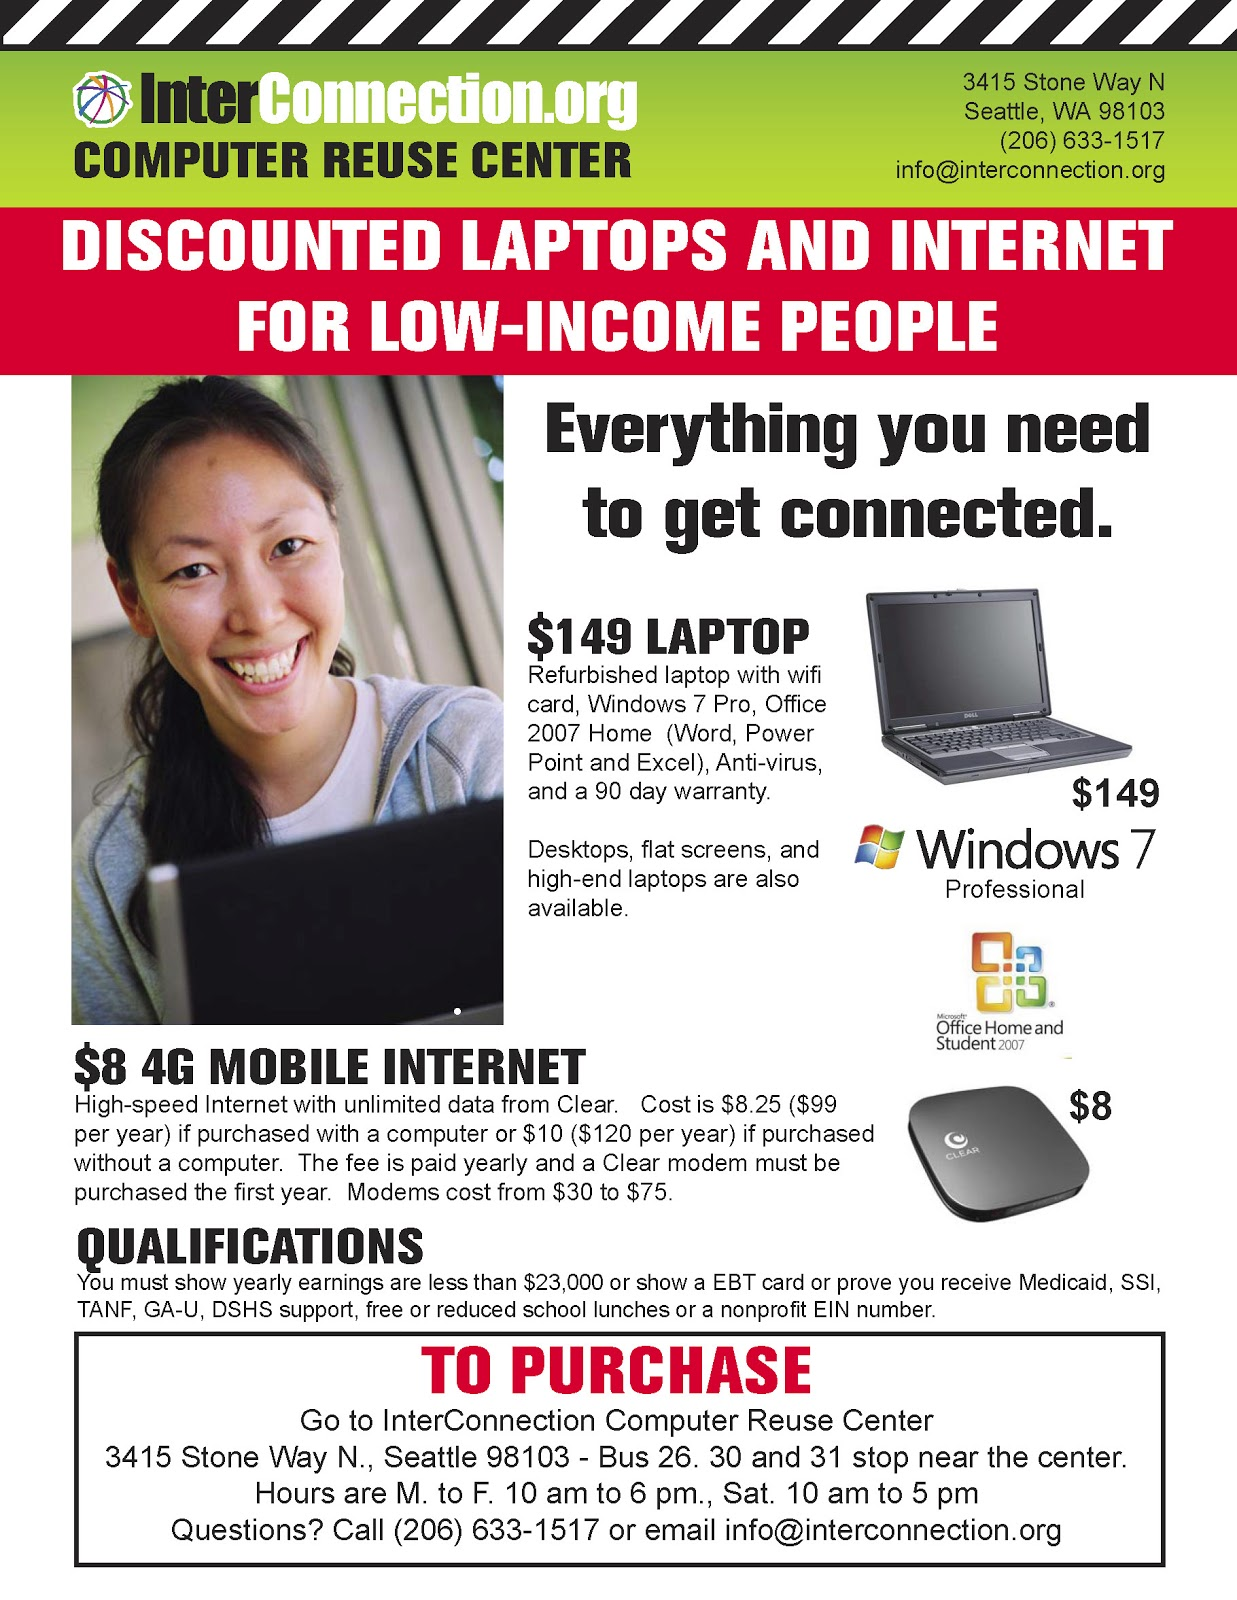 Technology Management Image: ConnectUp: New Low-cost Mobile Internet Program From